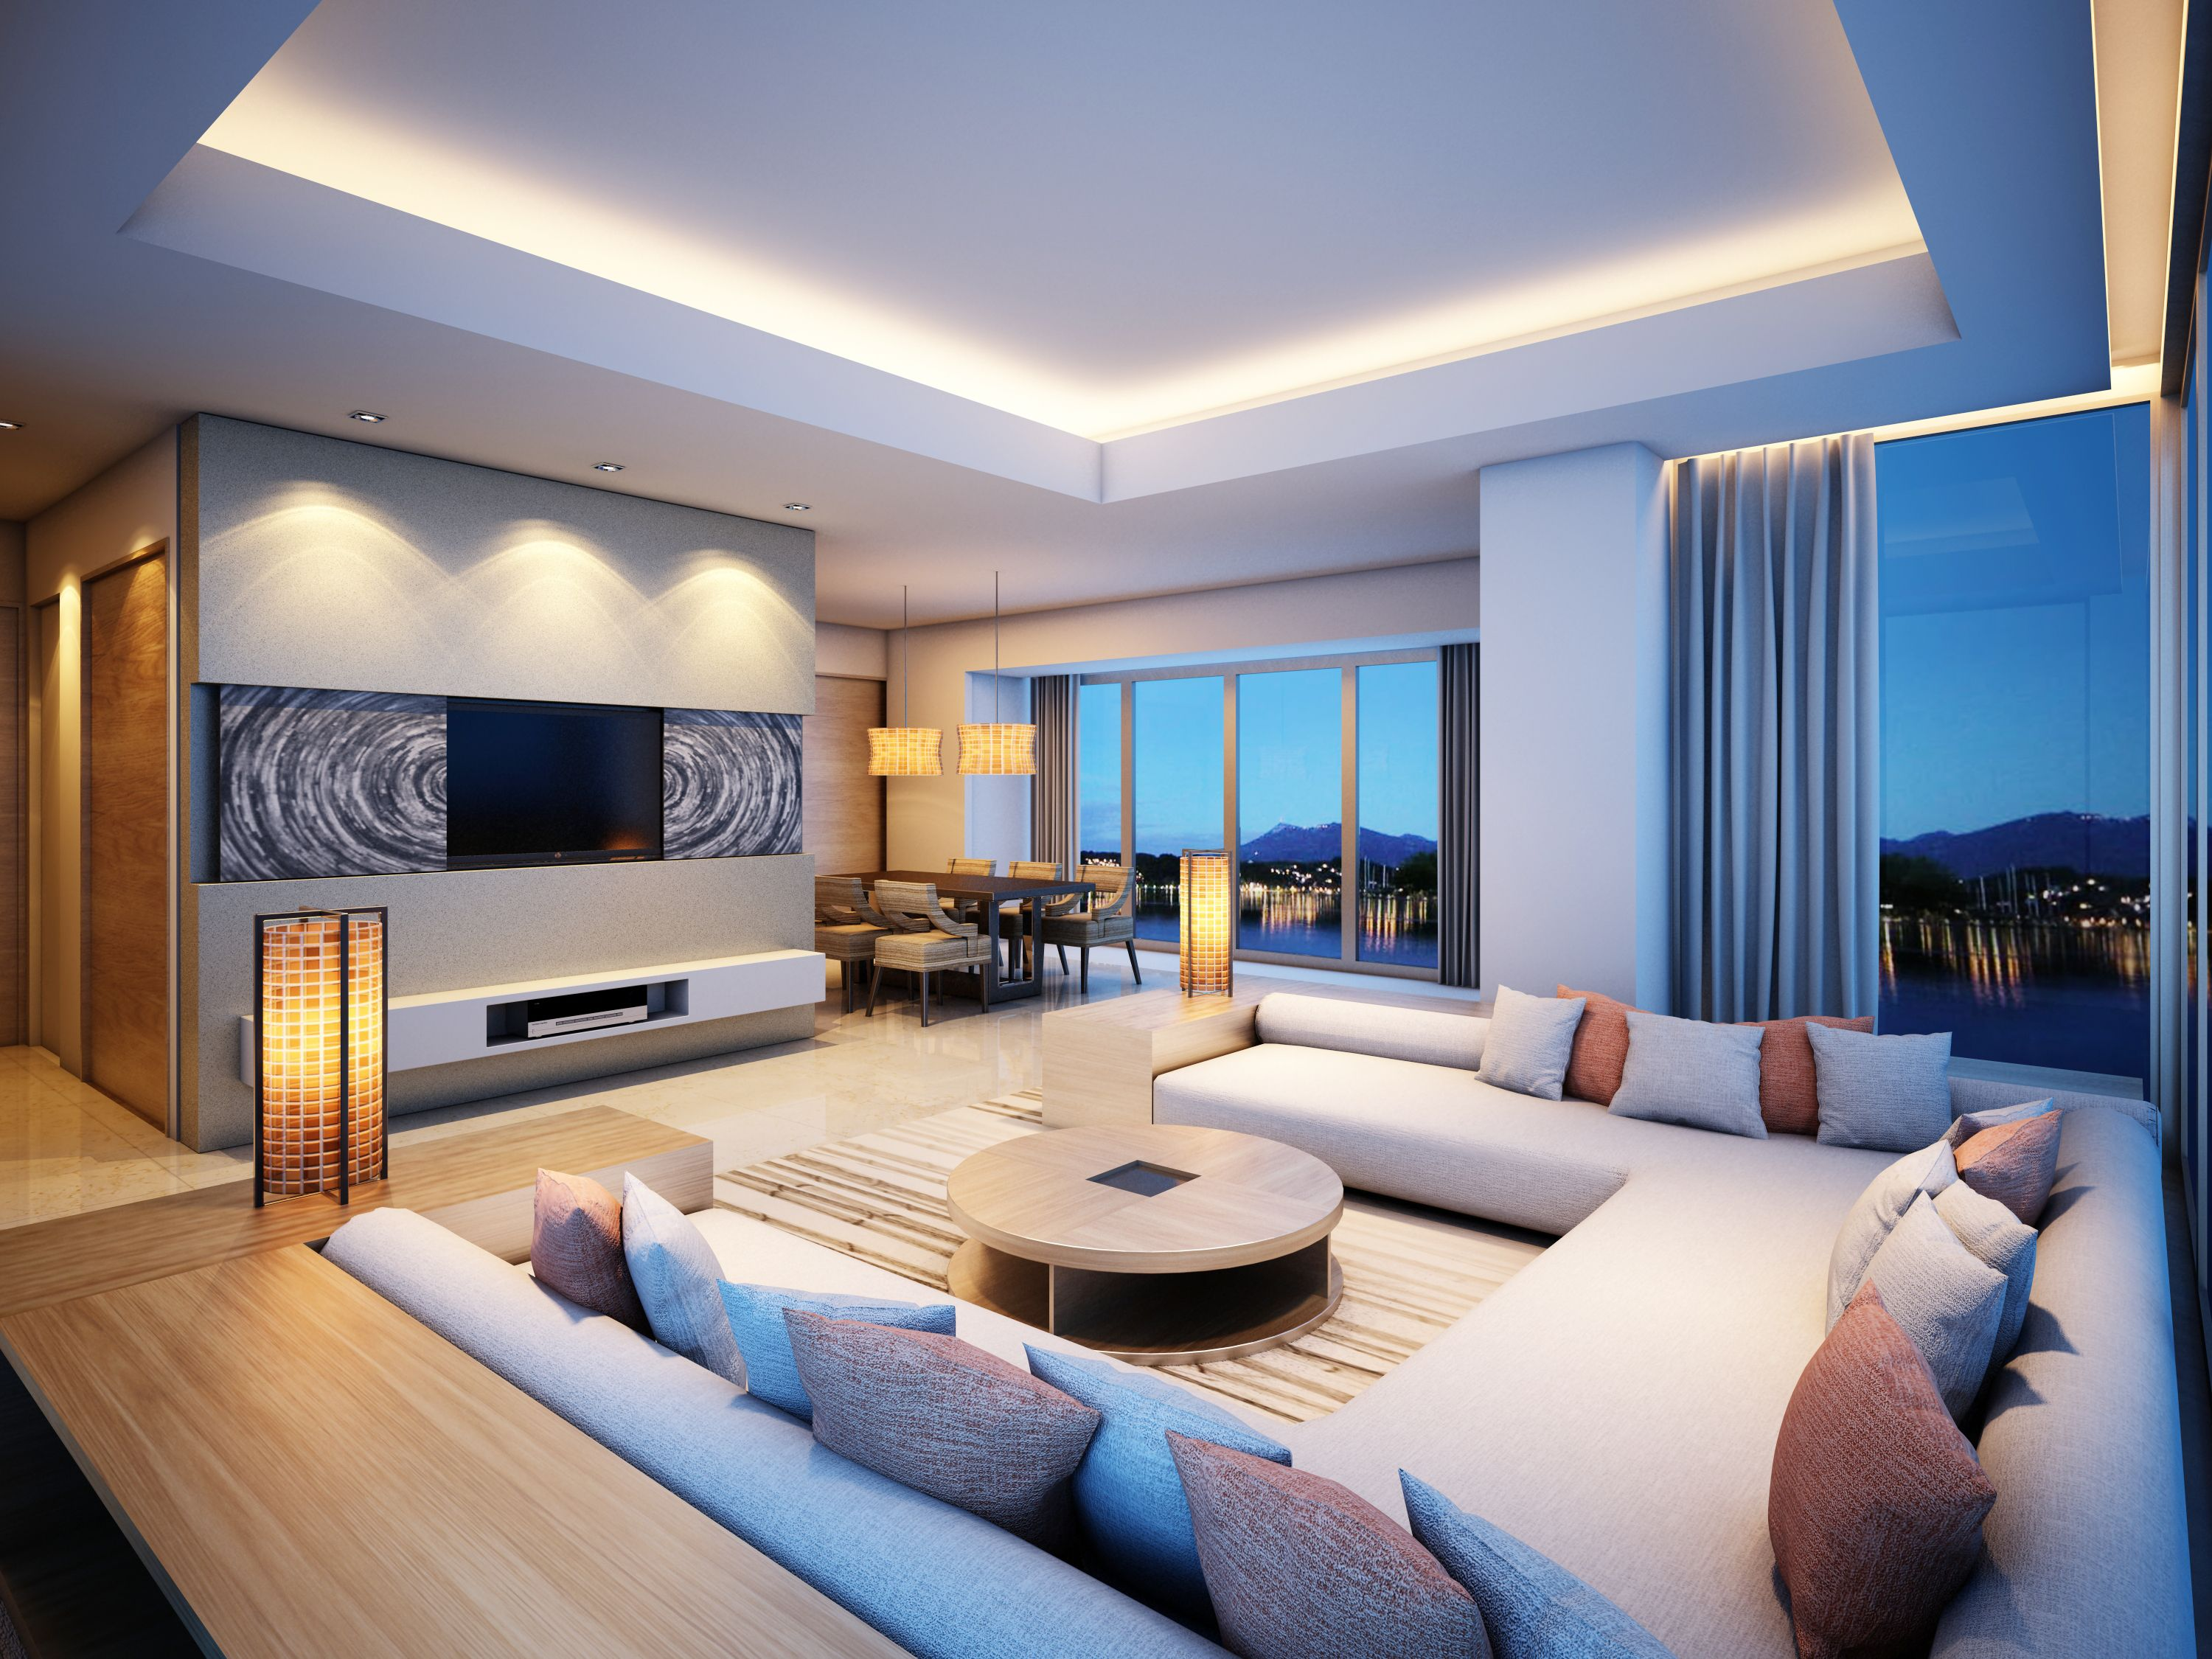 Modern Luxury Living Room With Purple Furniture And Decor Design Ideas